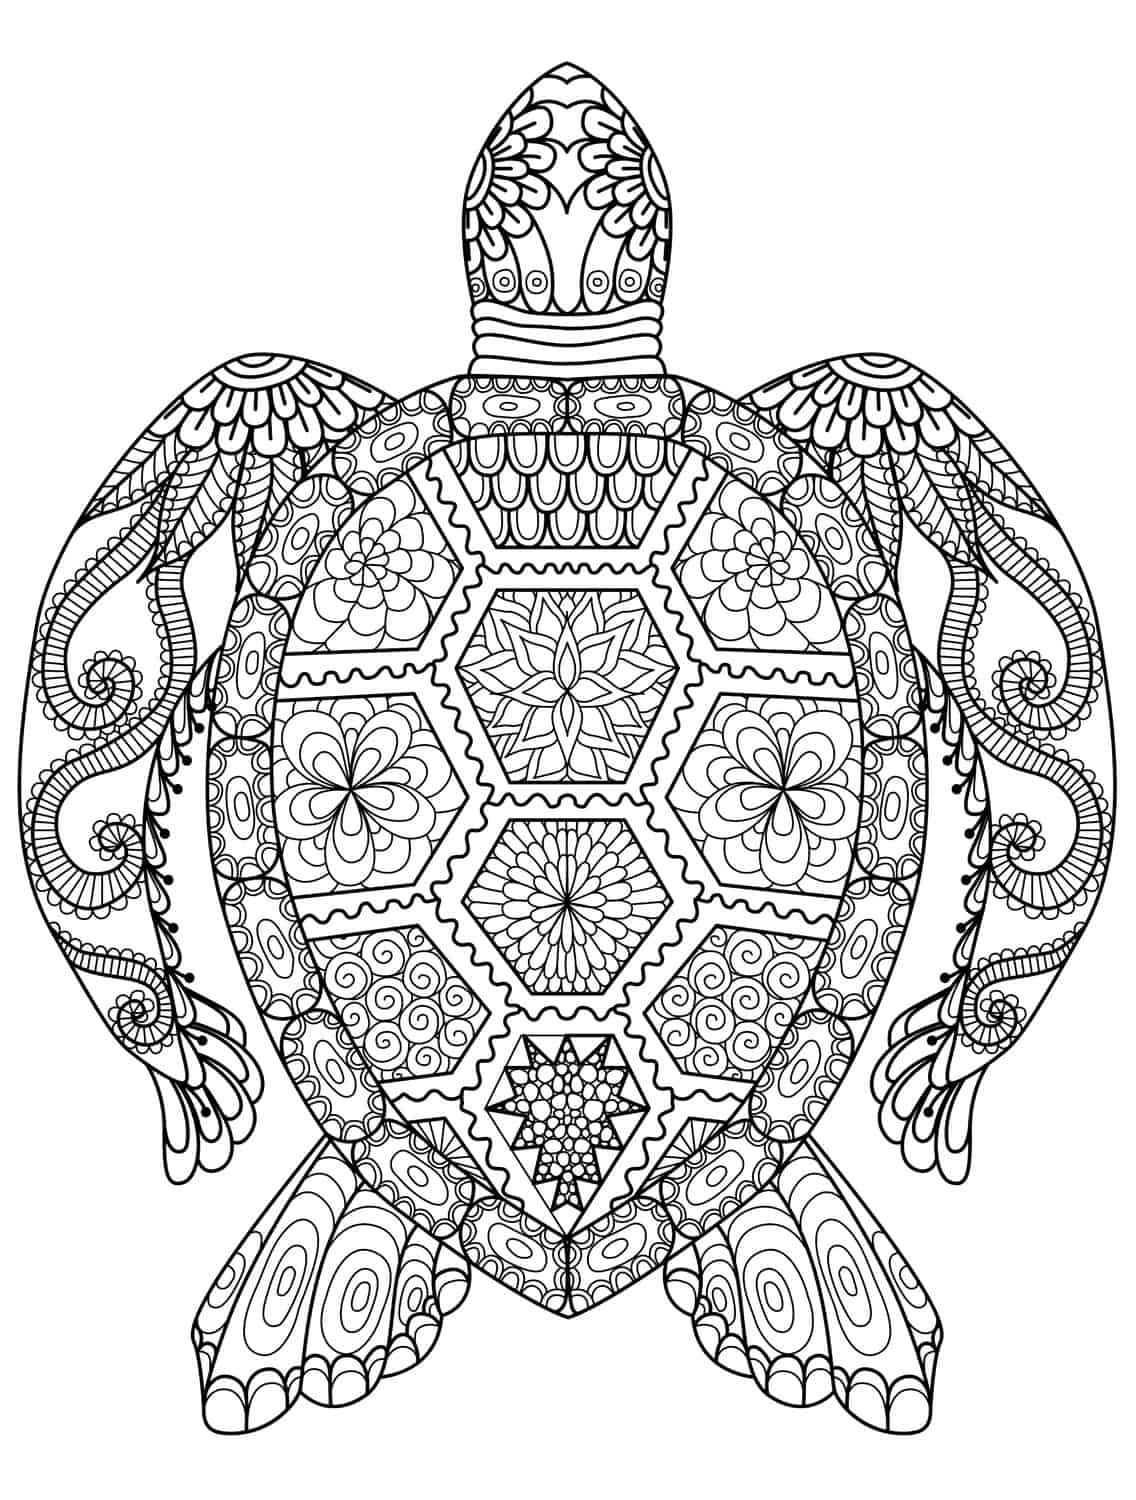 coloring adults pages free printable coloring pages for adults advanced coloring adults pages